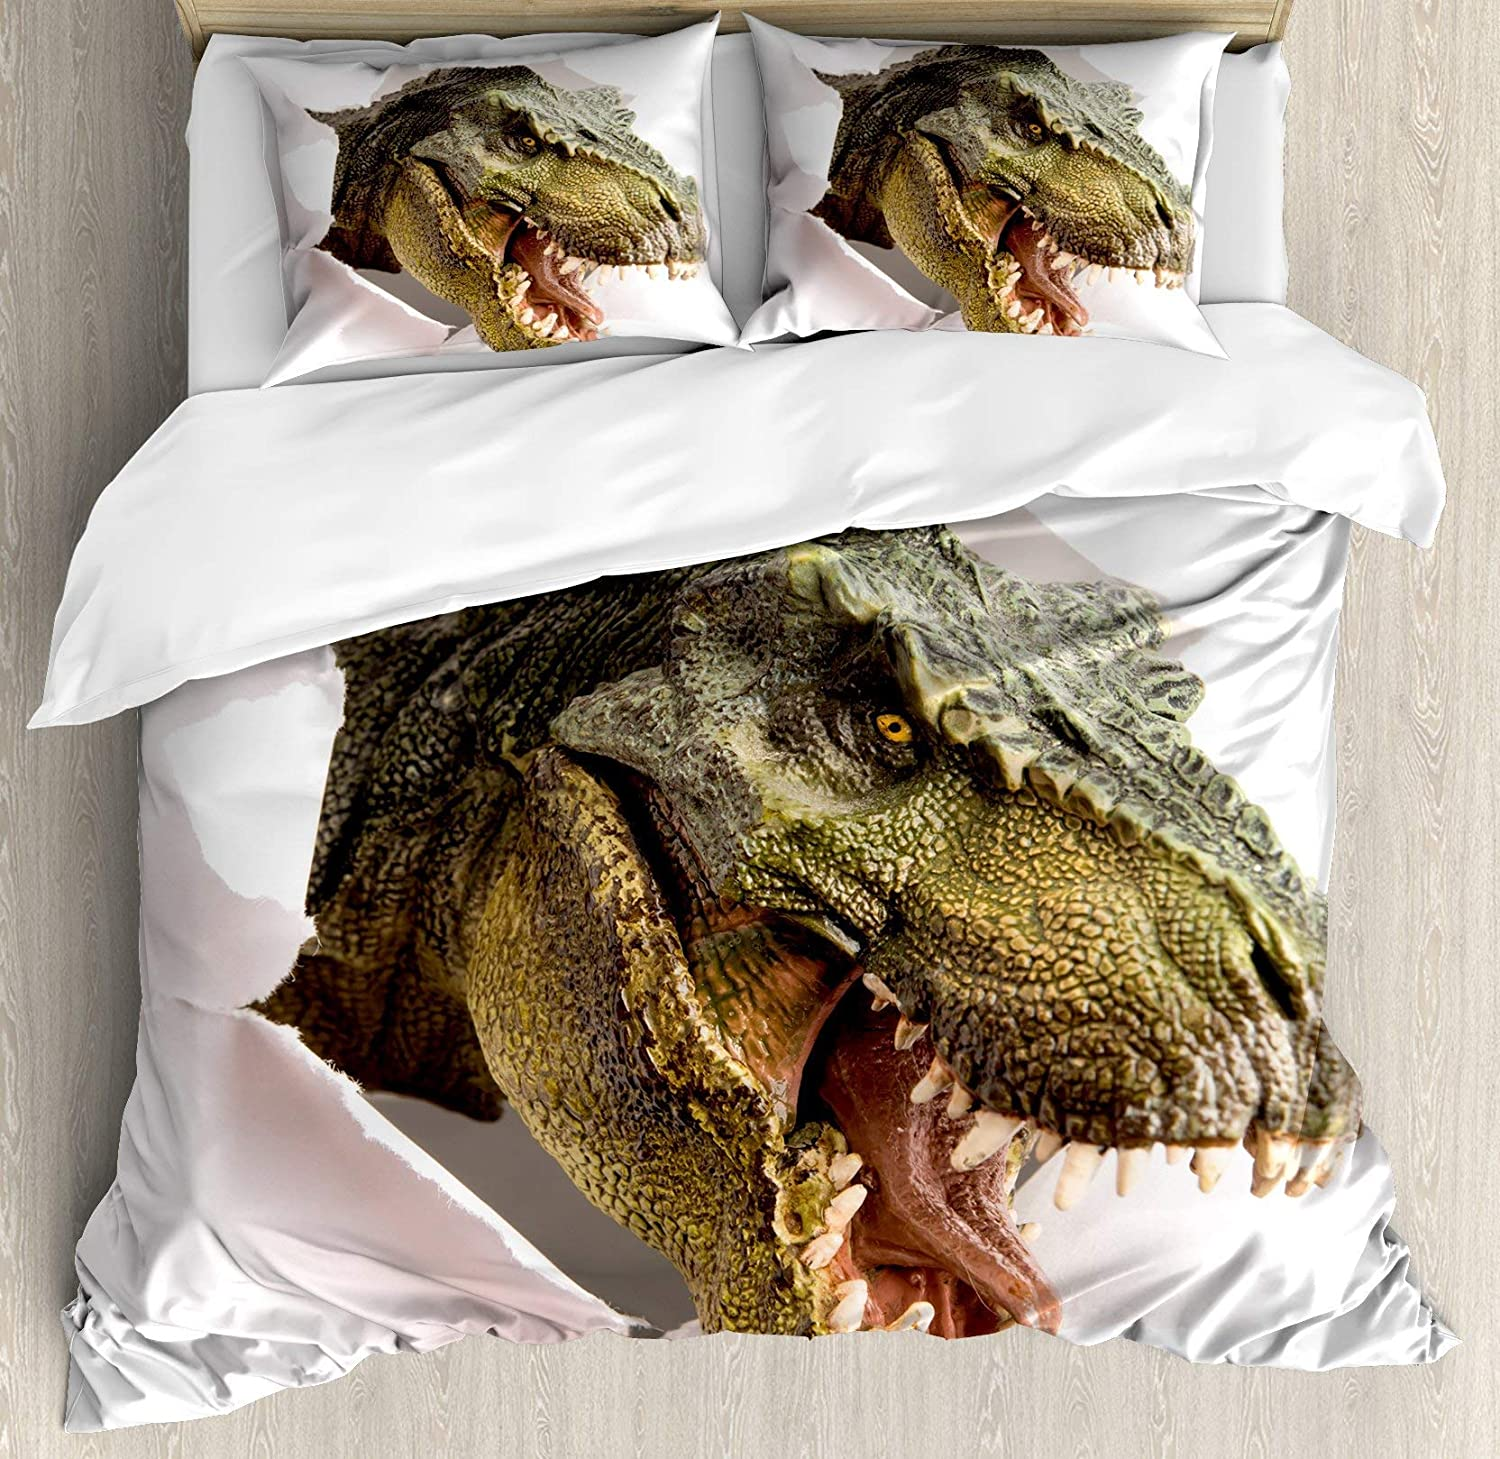 USOPHIA Dinosaur 4 Pieces Bed Sheets Set Twin Size, Dangerous Dinosaur Tears Up The Paper Wall Image Scary Break Scenery Floral Duvet Cover Set, Green Army Green White